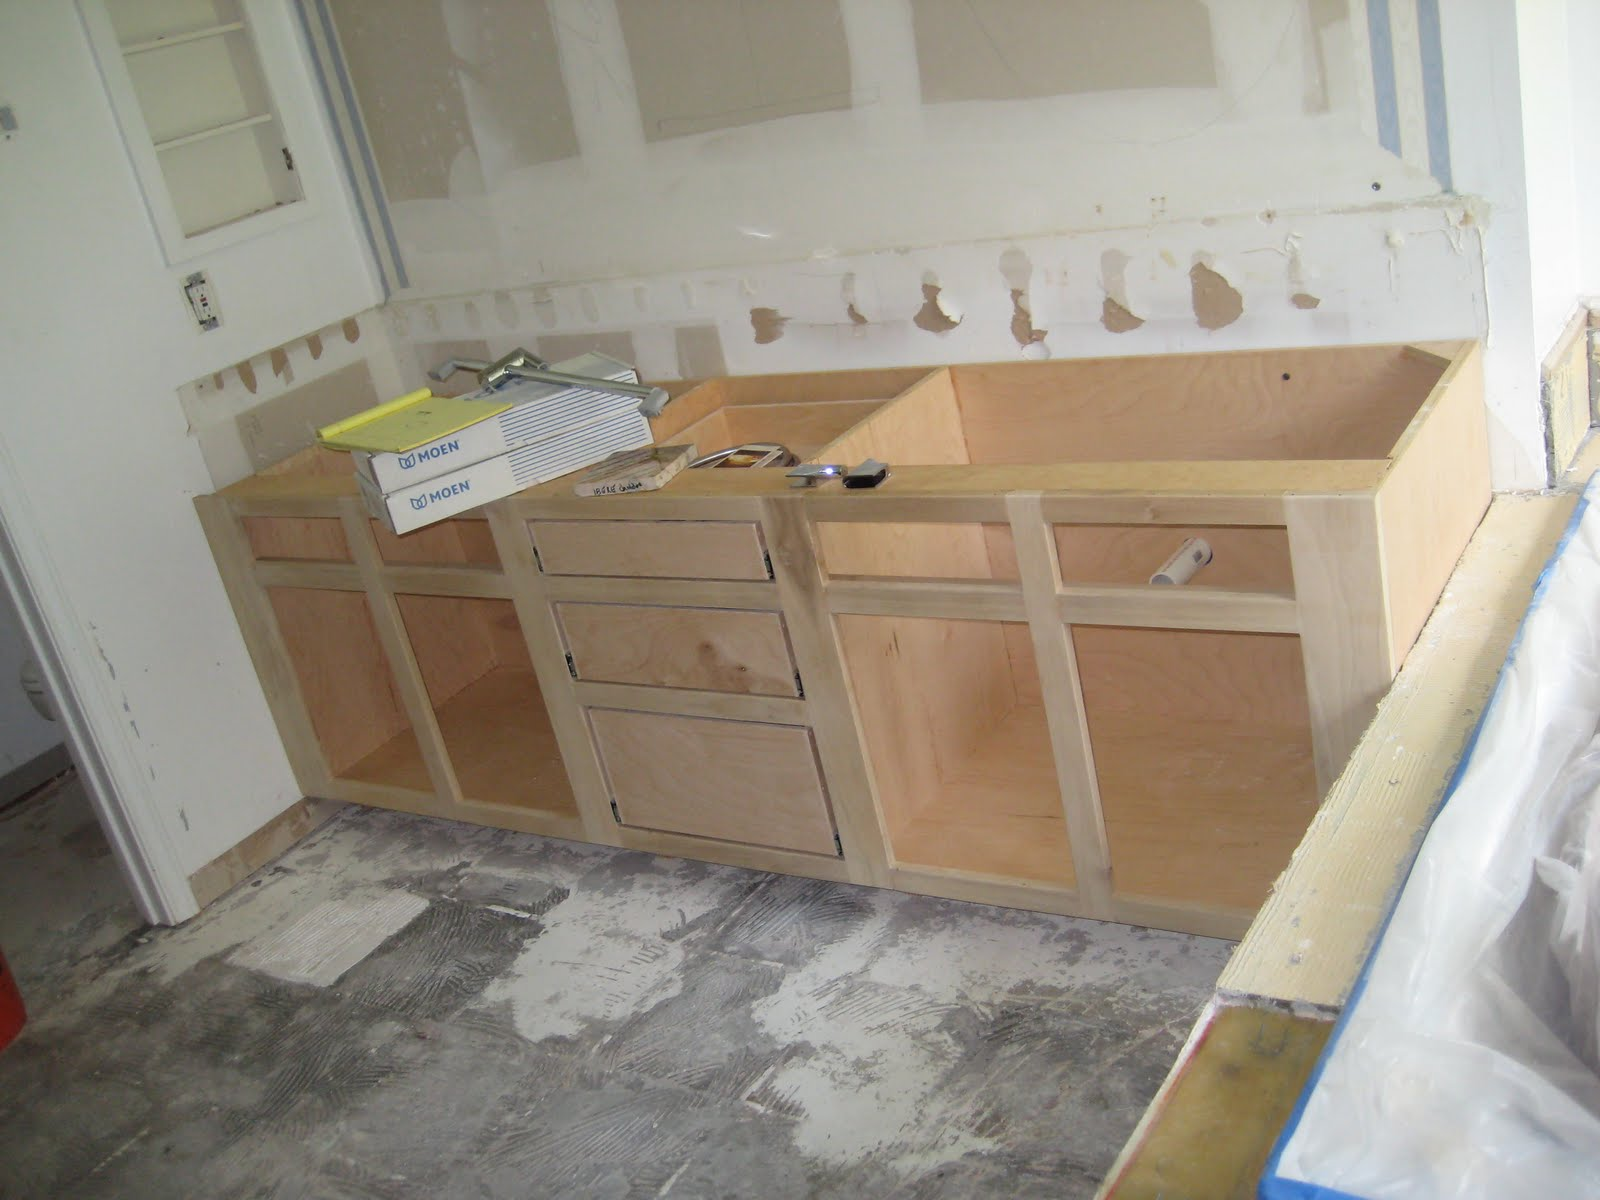 7 features of an eco friendly bathroom remodel ecosafe spaces for Eco friendly bathroom remodel